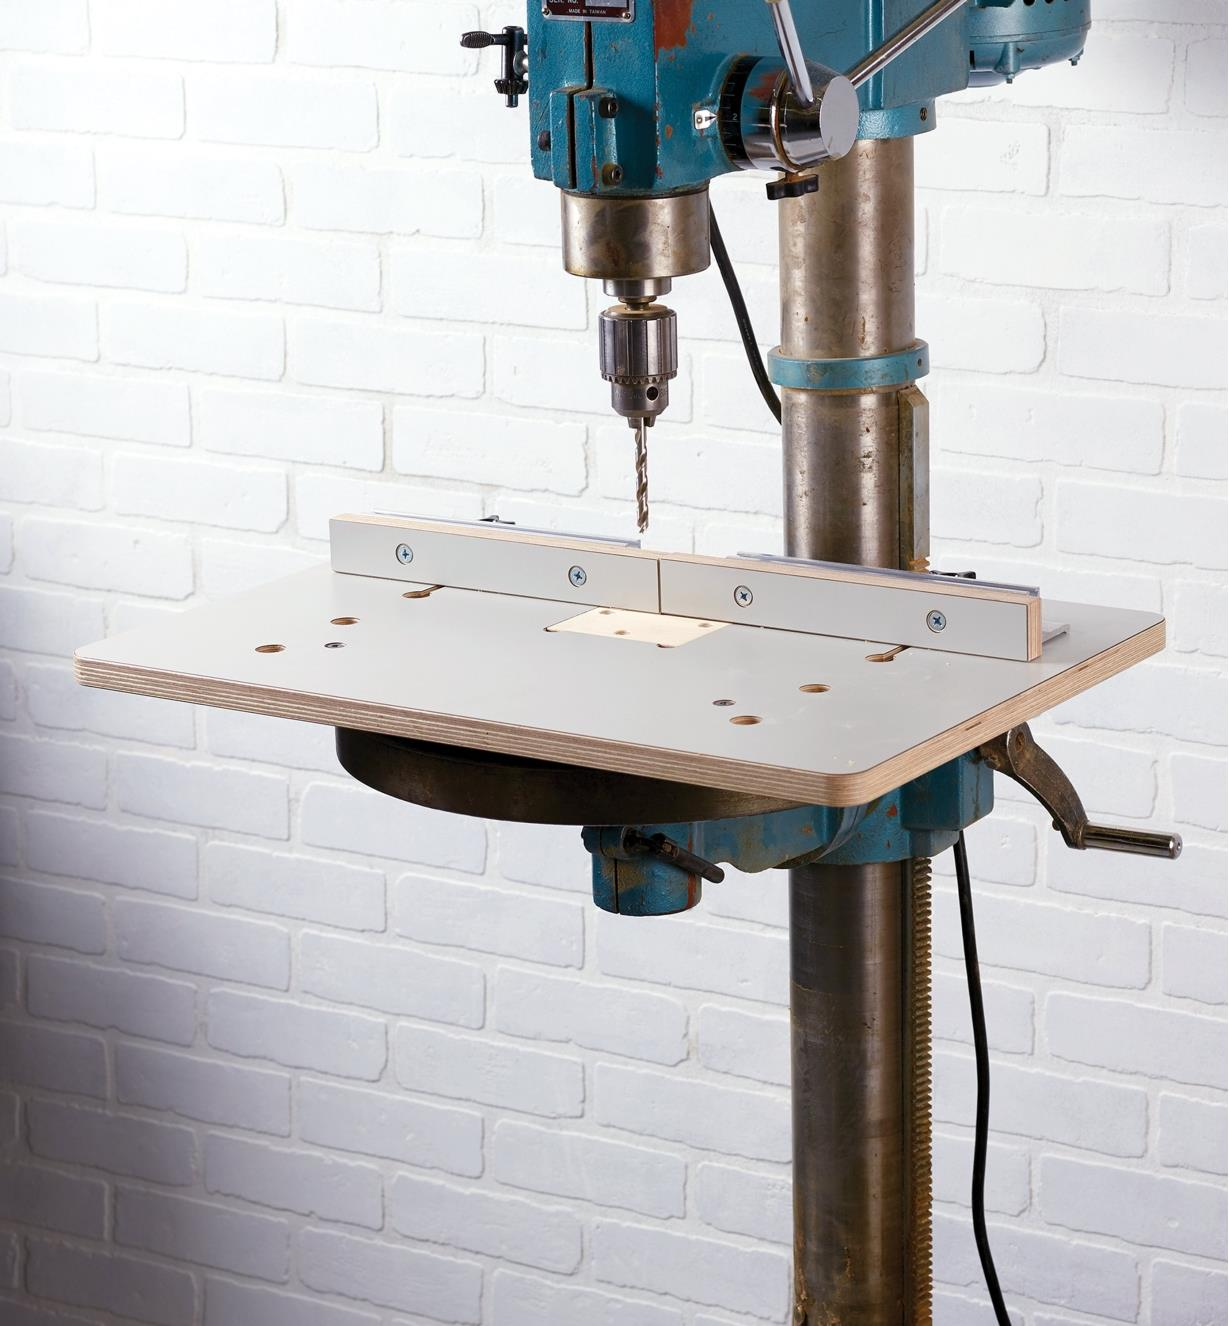 A Veritas large drill-press table and fence mounted on a drill press